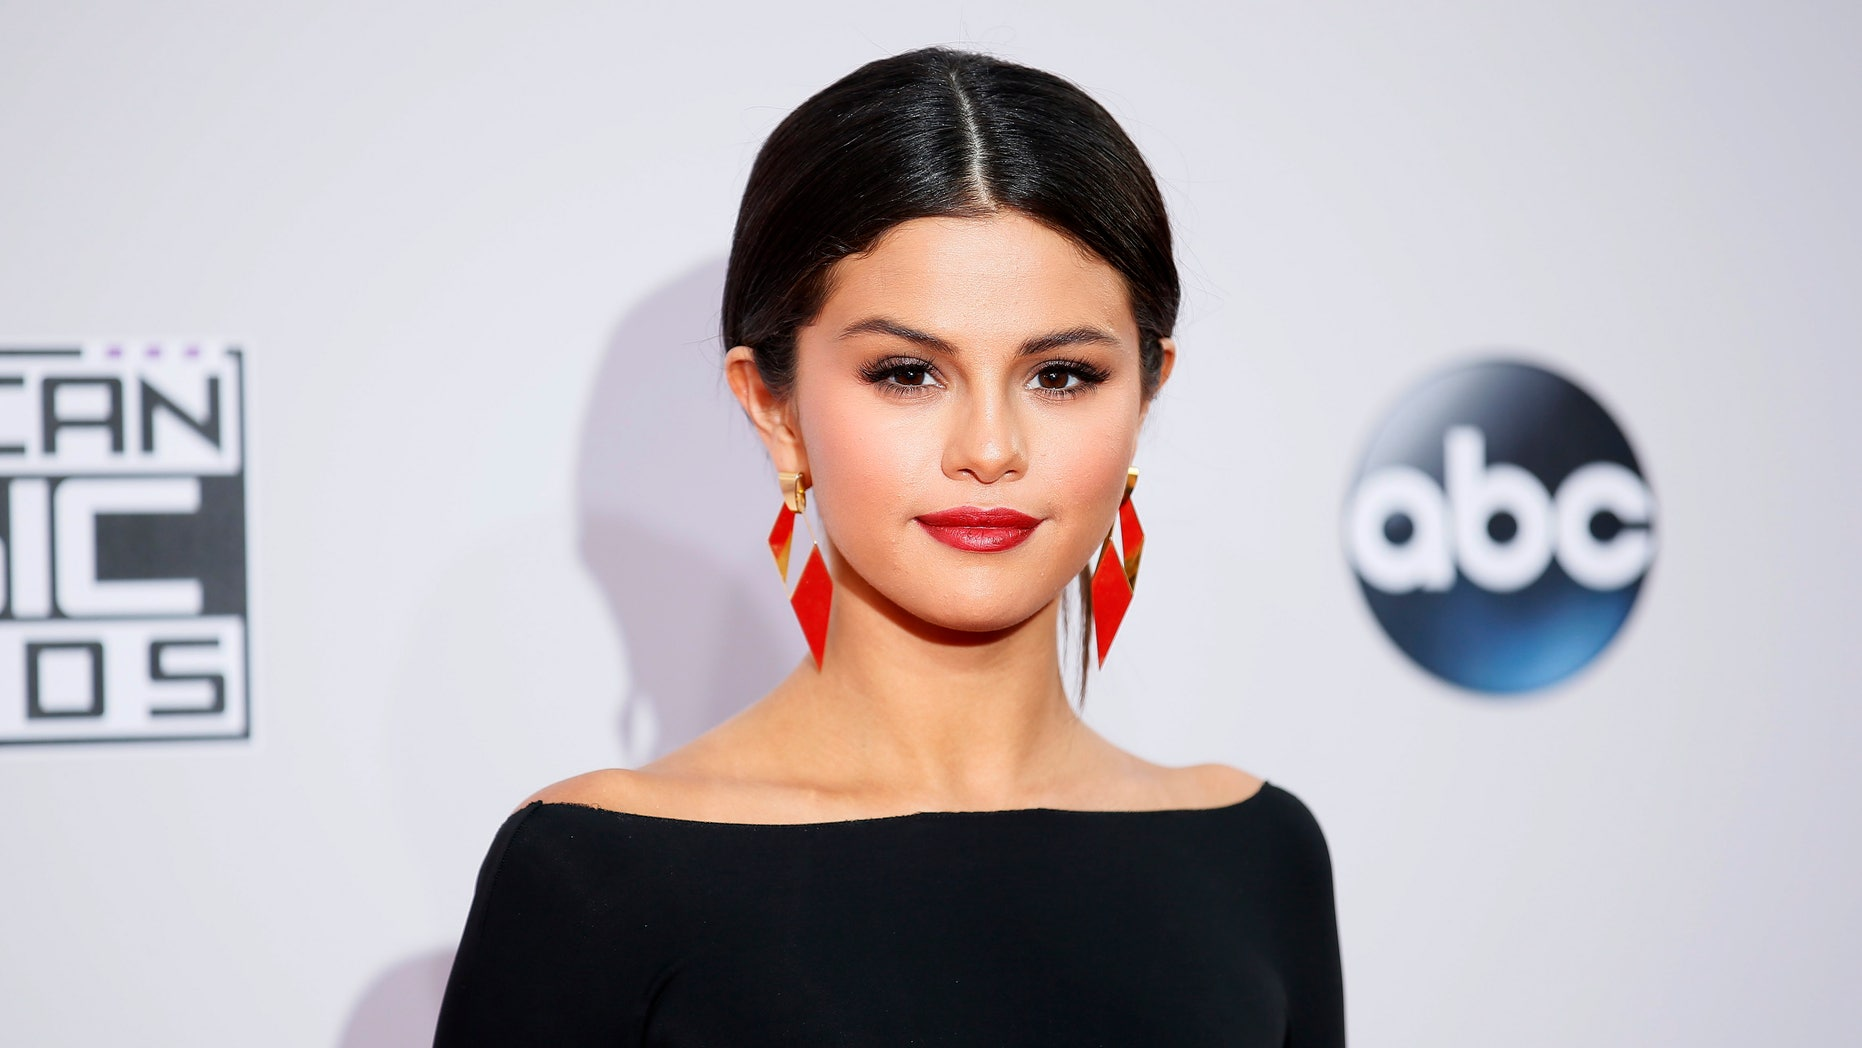 November 23, 2014. Singer Selena Gomez arrives at the 42nd American Music Awards in Los Angeles, California.